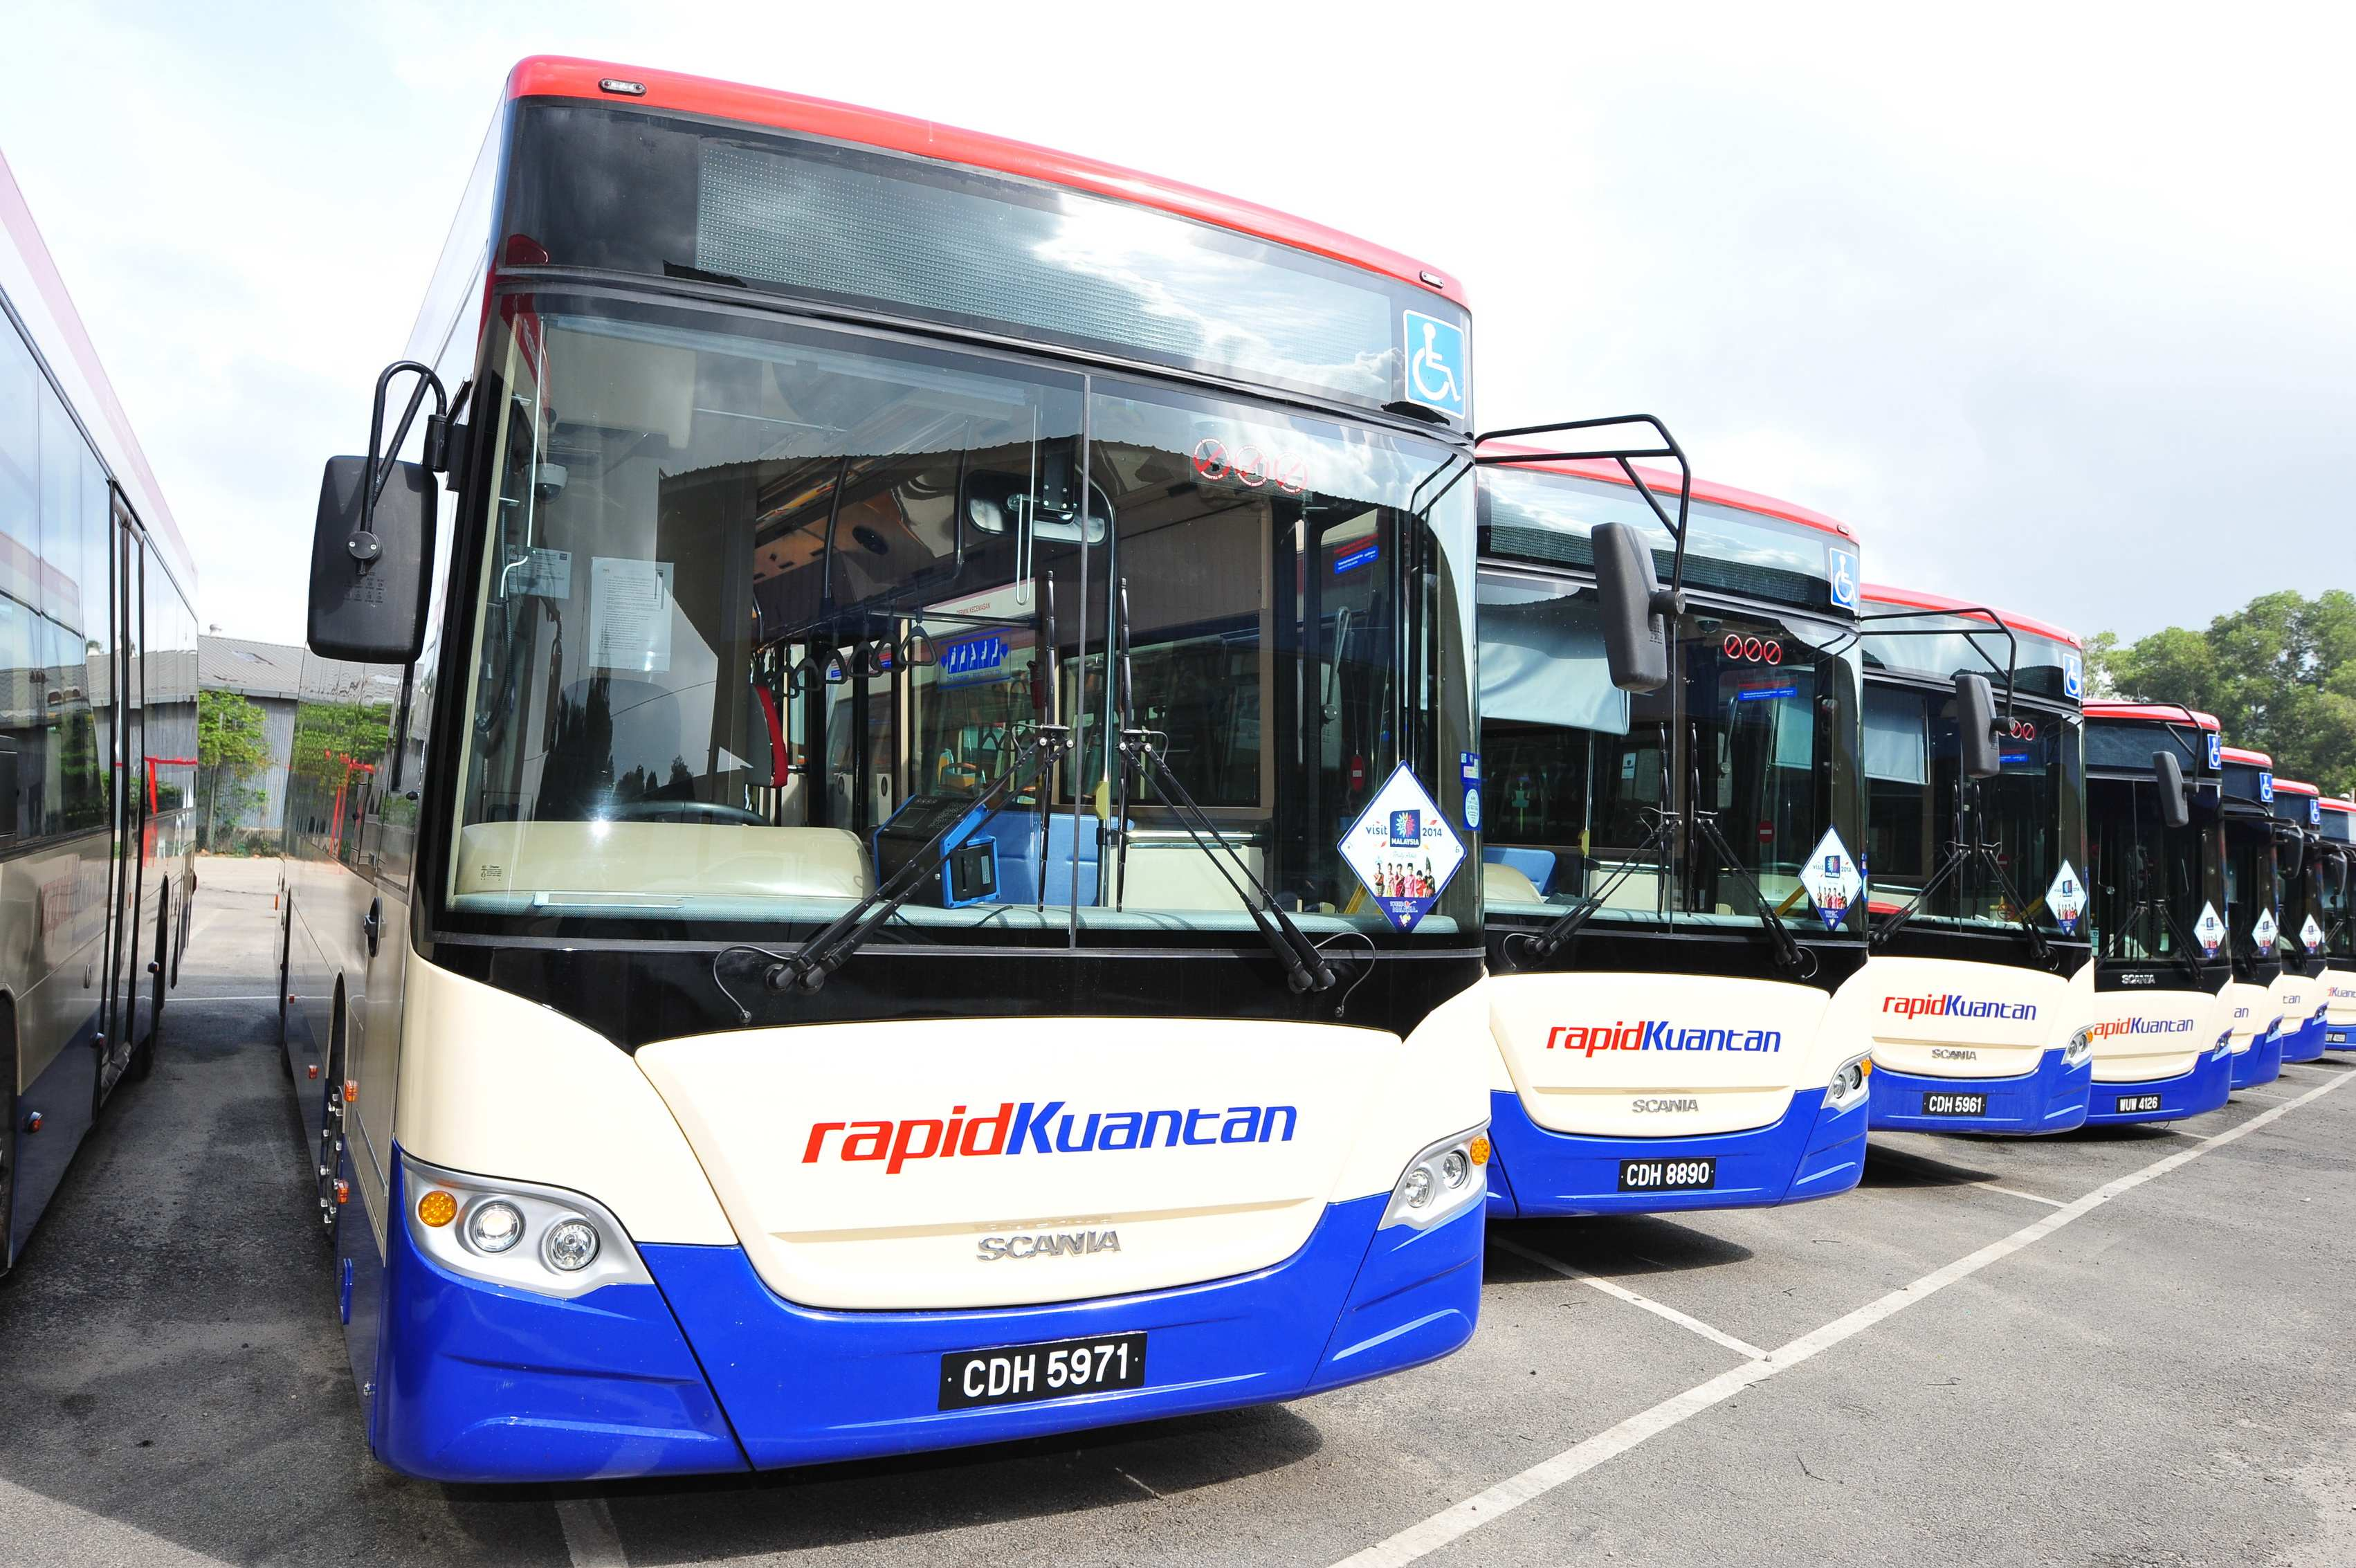 ways to improve express buses services in malaysia Grassland one of the more popular choice for luxury travel from singapore to kl, you can choose between two classes of grassland express coaches – namely the grassland super vip coach or the royal vip express which is a more spacious double deck bus.